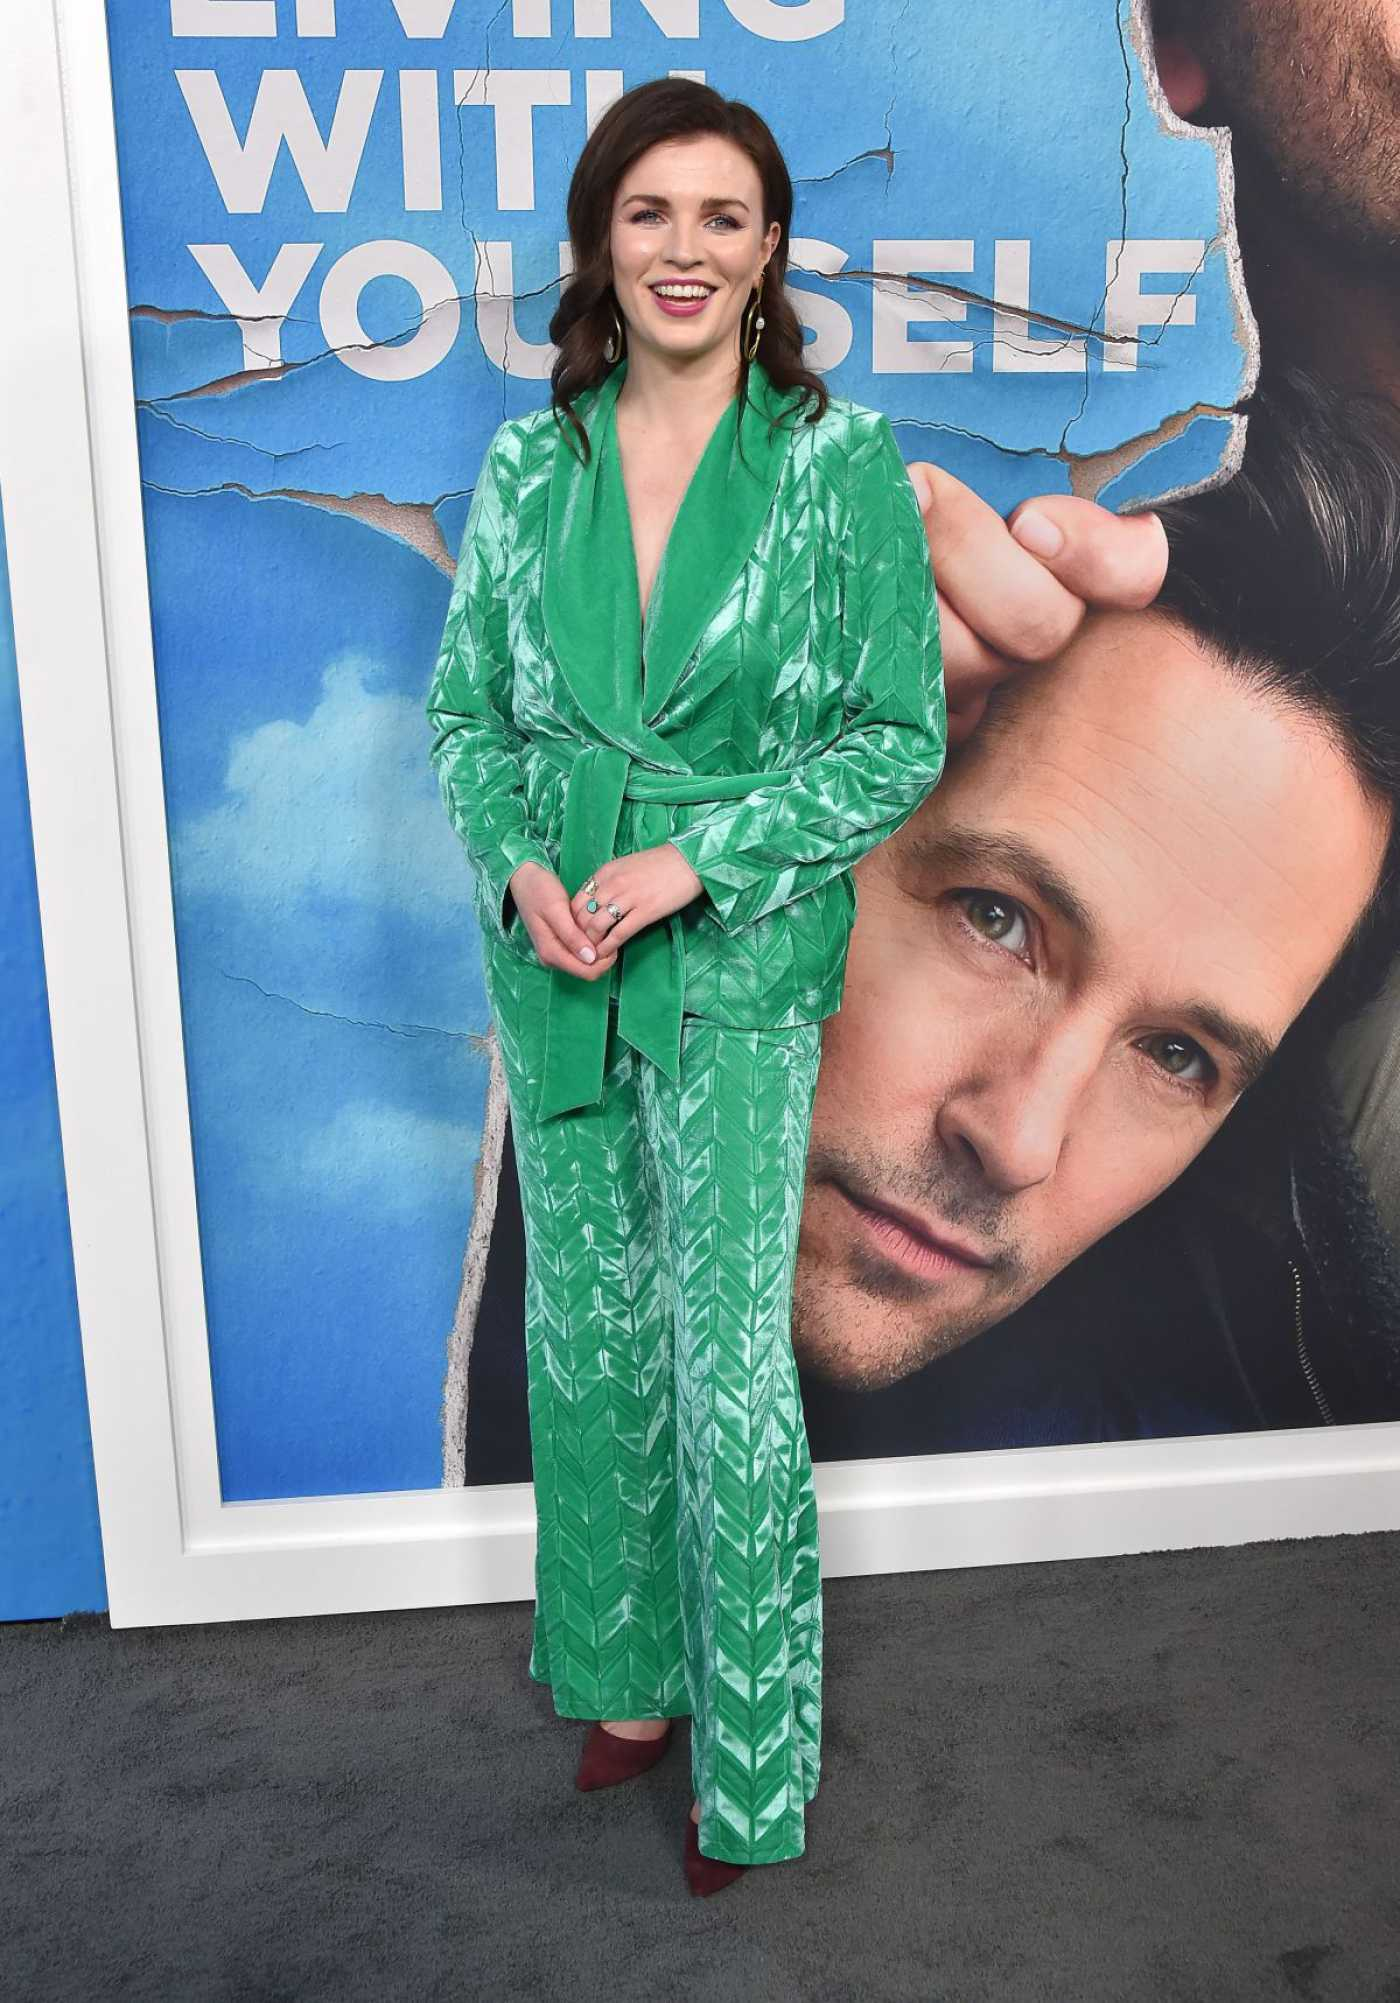 Aisling Bea Attends Living with Yourself Premiere at Arclight Cinemas in LA 10/16/2019